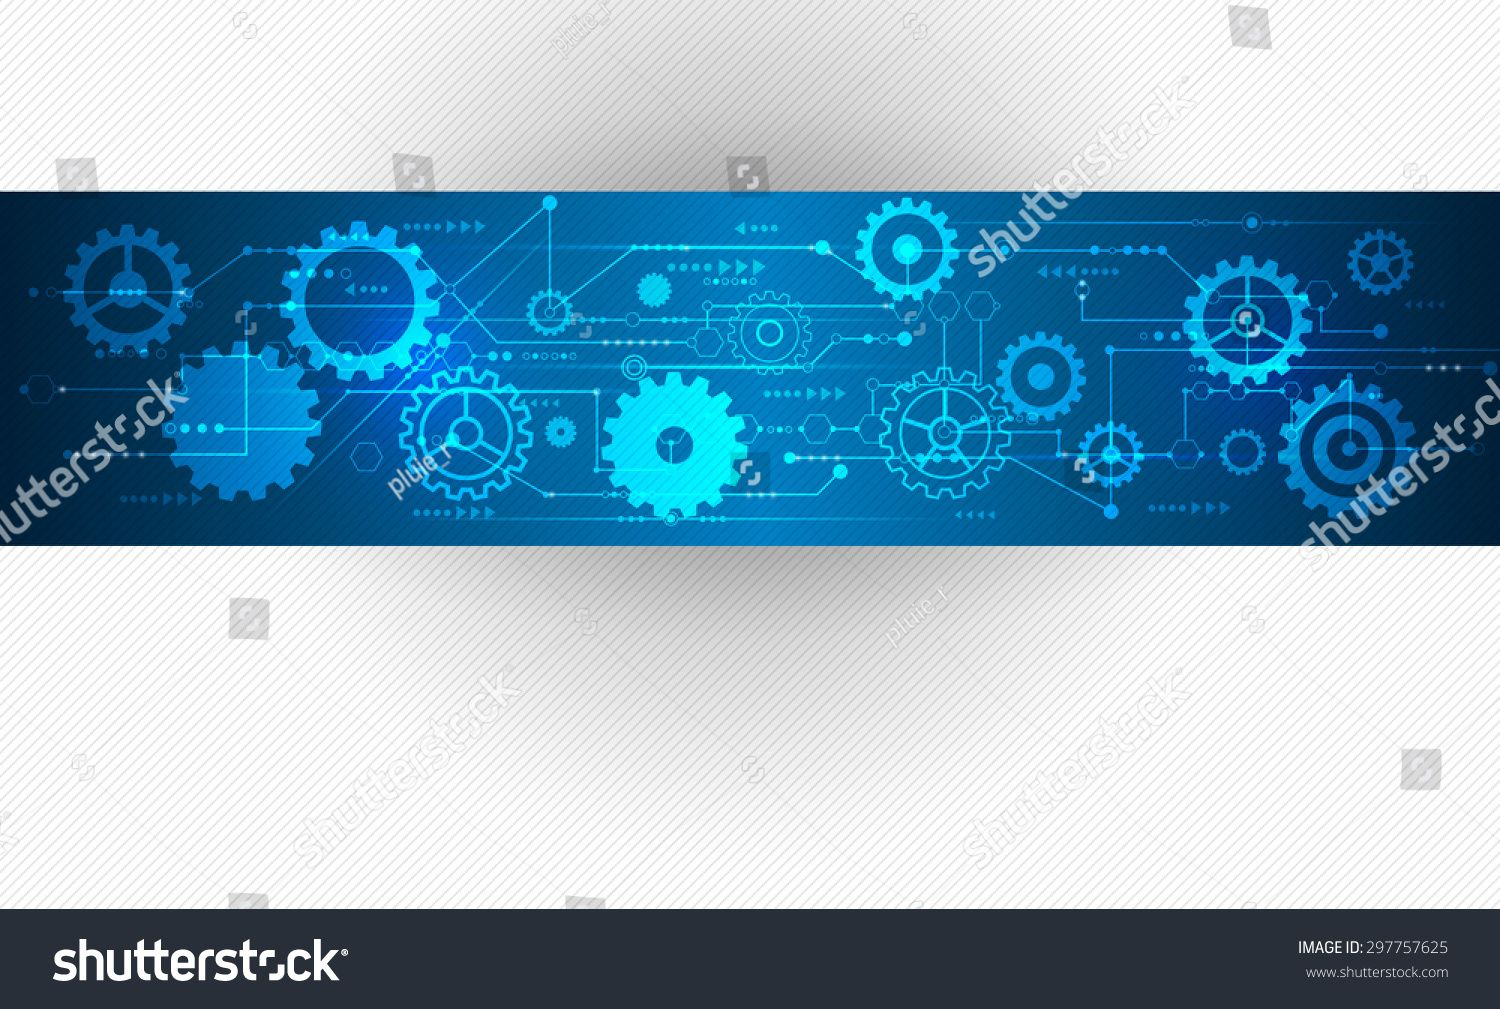 Vector Abstract Futuristic Stripe Line Printed Circuit Board Infographic Pattern With Gear Wheel And Arrow Symbol